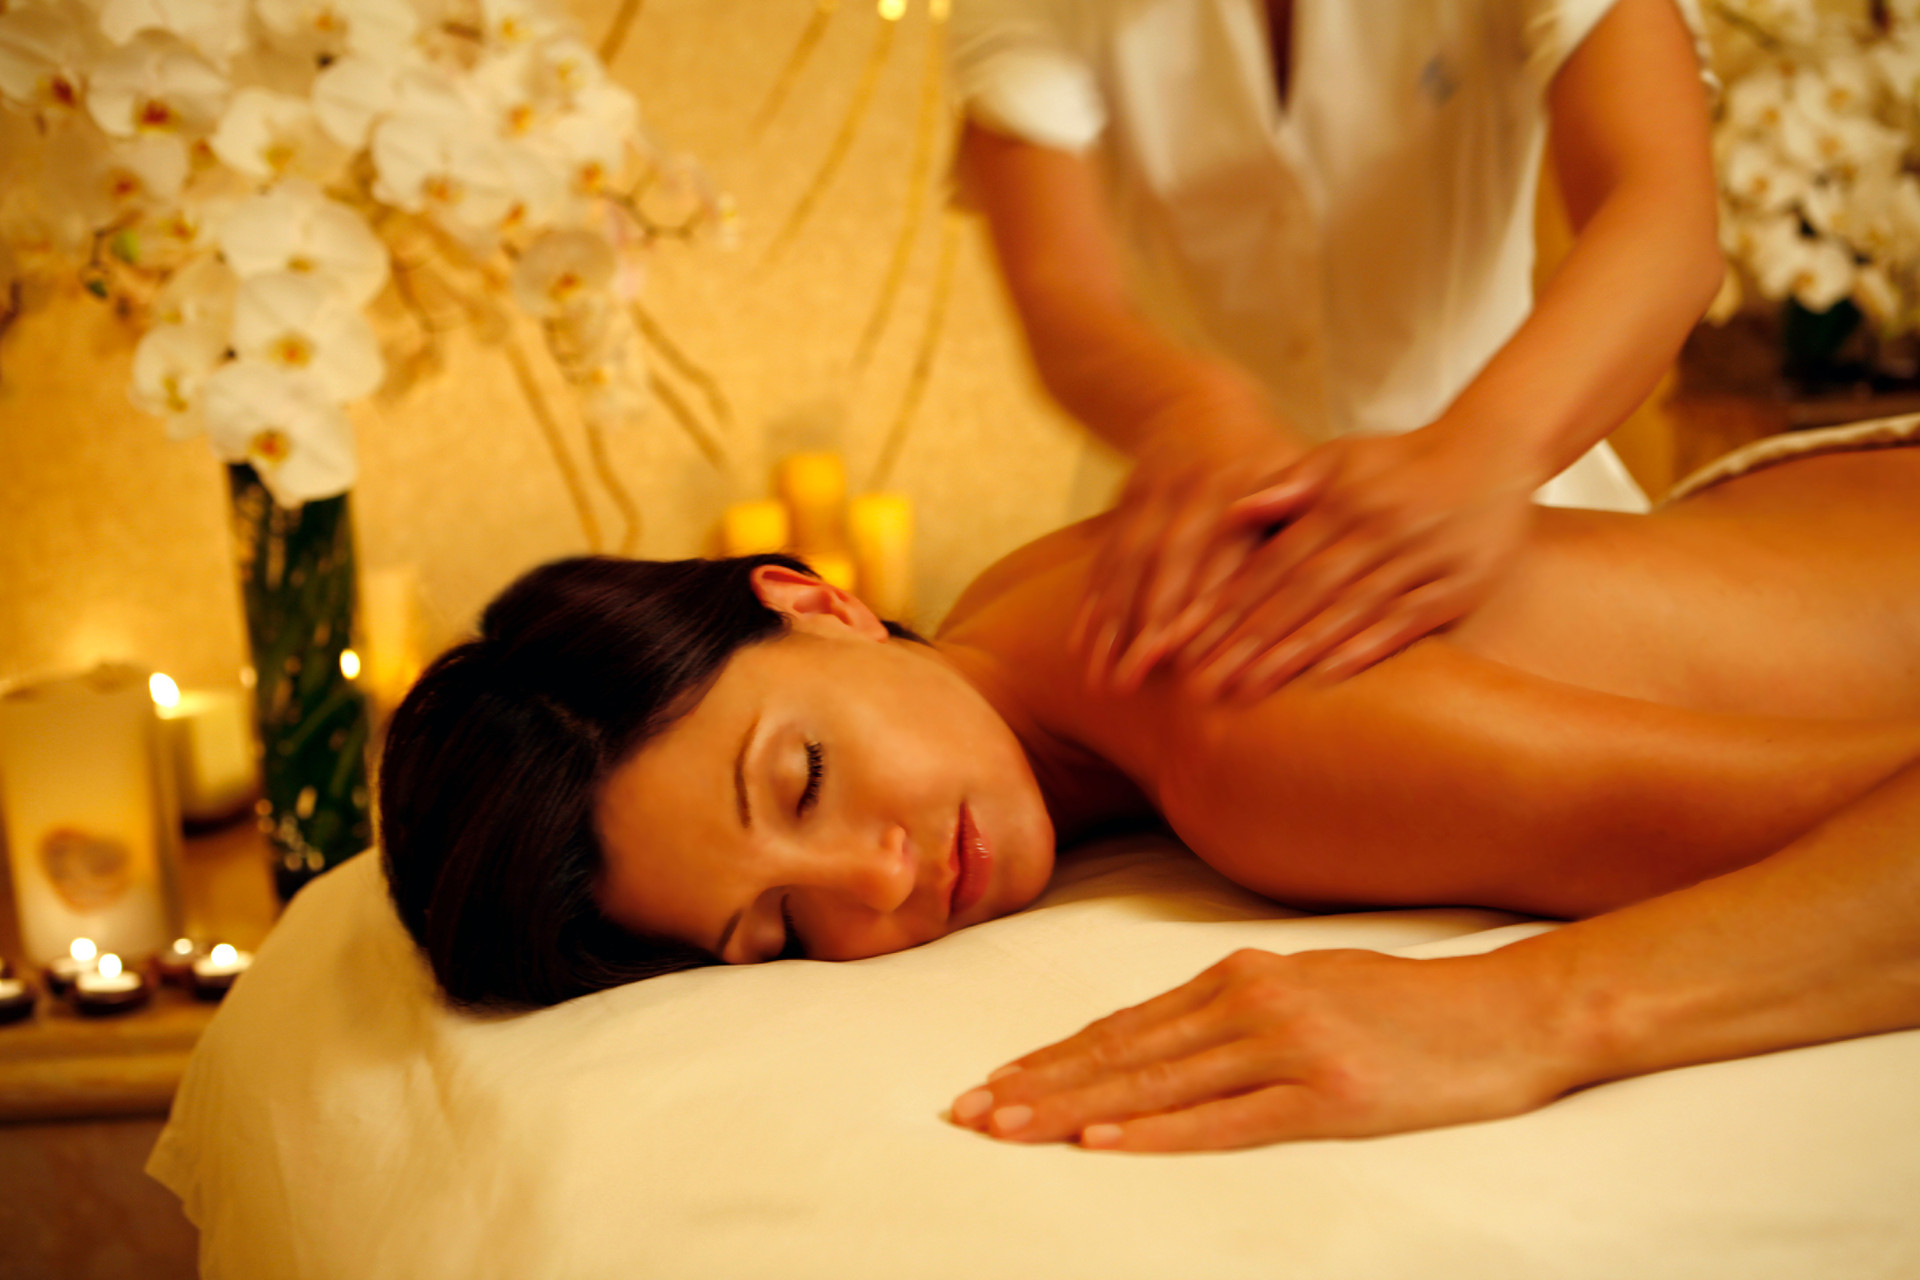 Massage Is More Than Pampering Yourself!